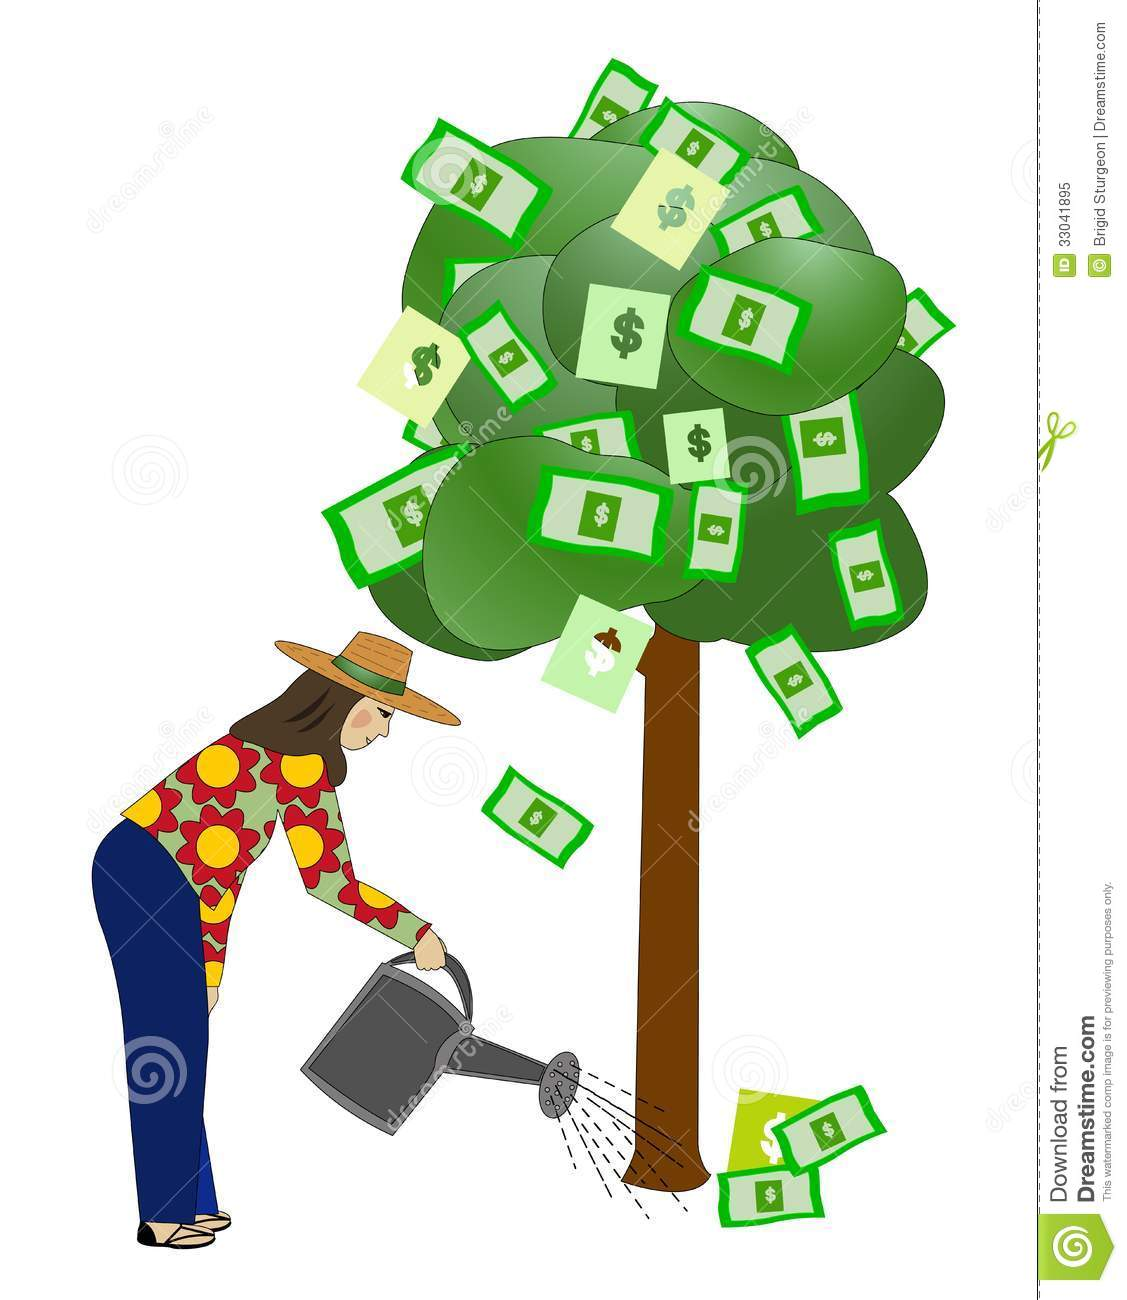 Watering The Money Tree Royalty Free Stock Photo - Image: 33041895